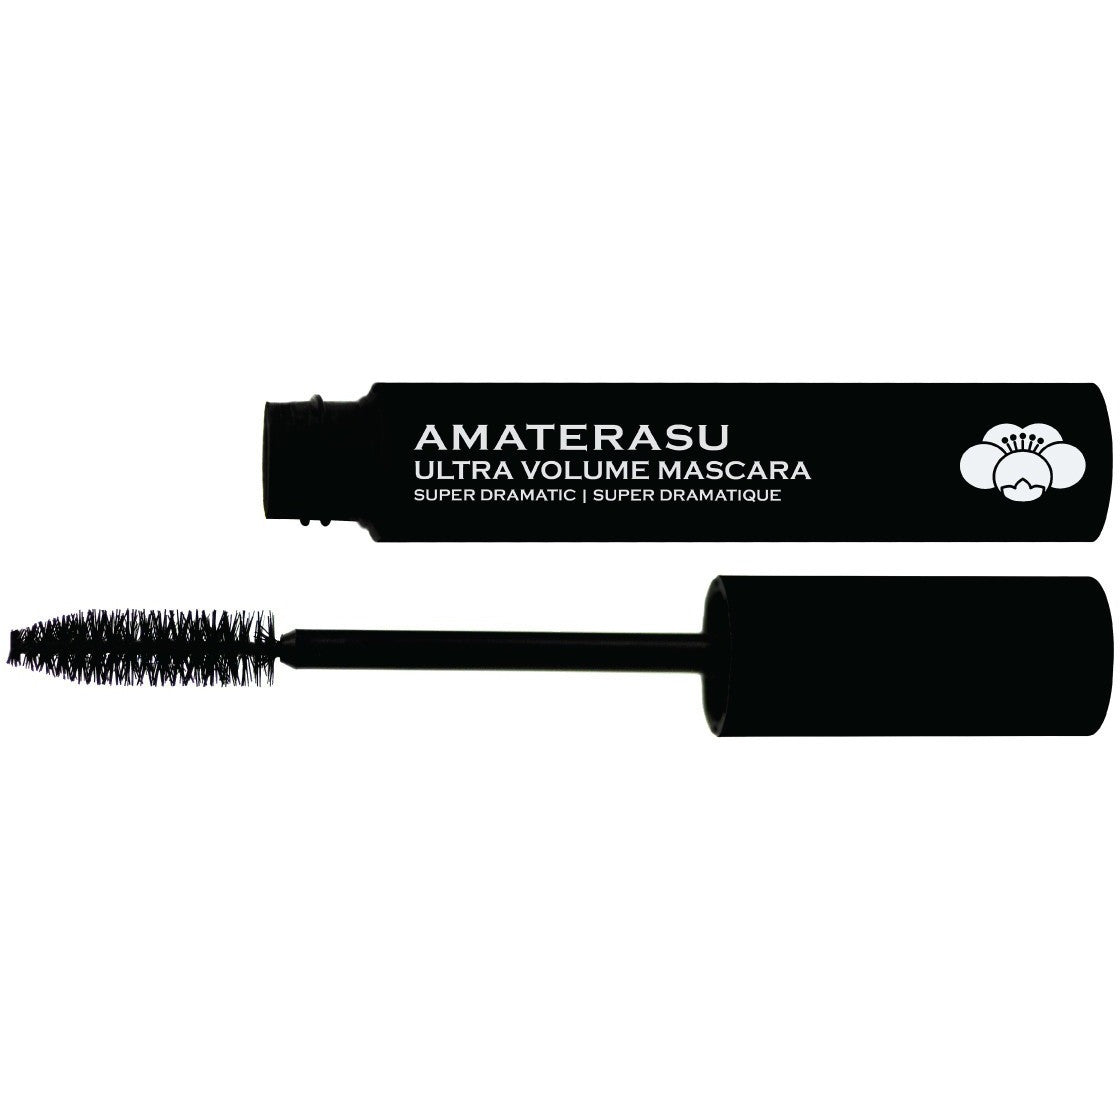 amaterasu | ultra volume mascara[product_type ]amaterasu - Kiss and Makeup